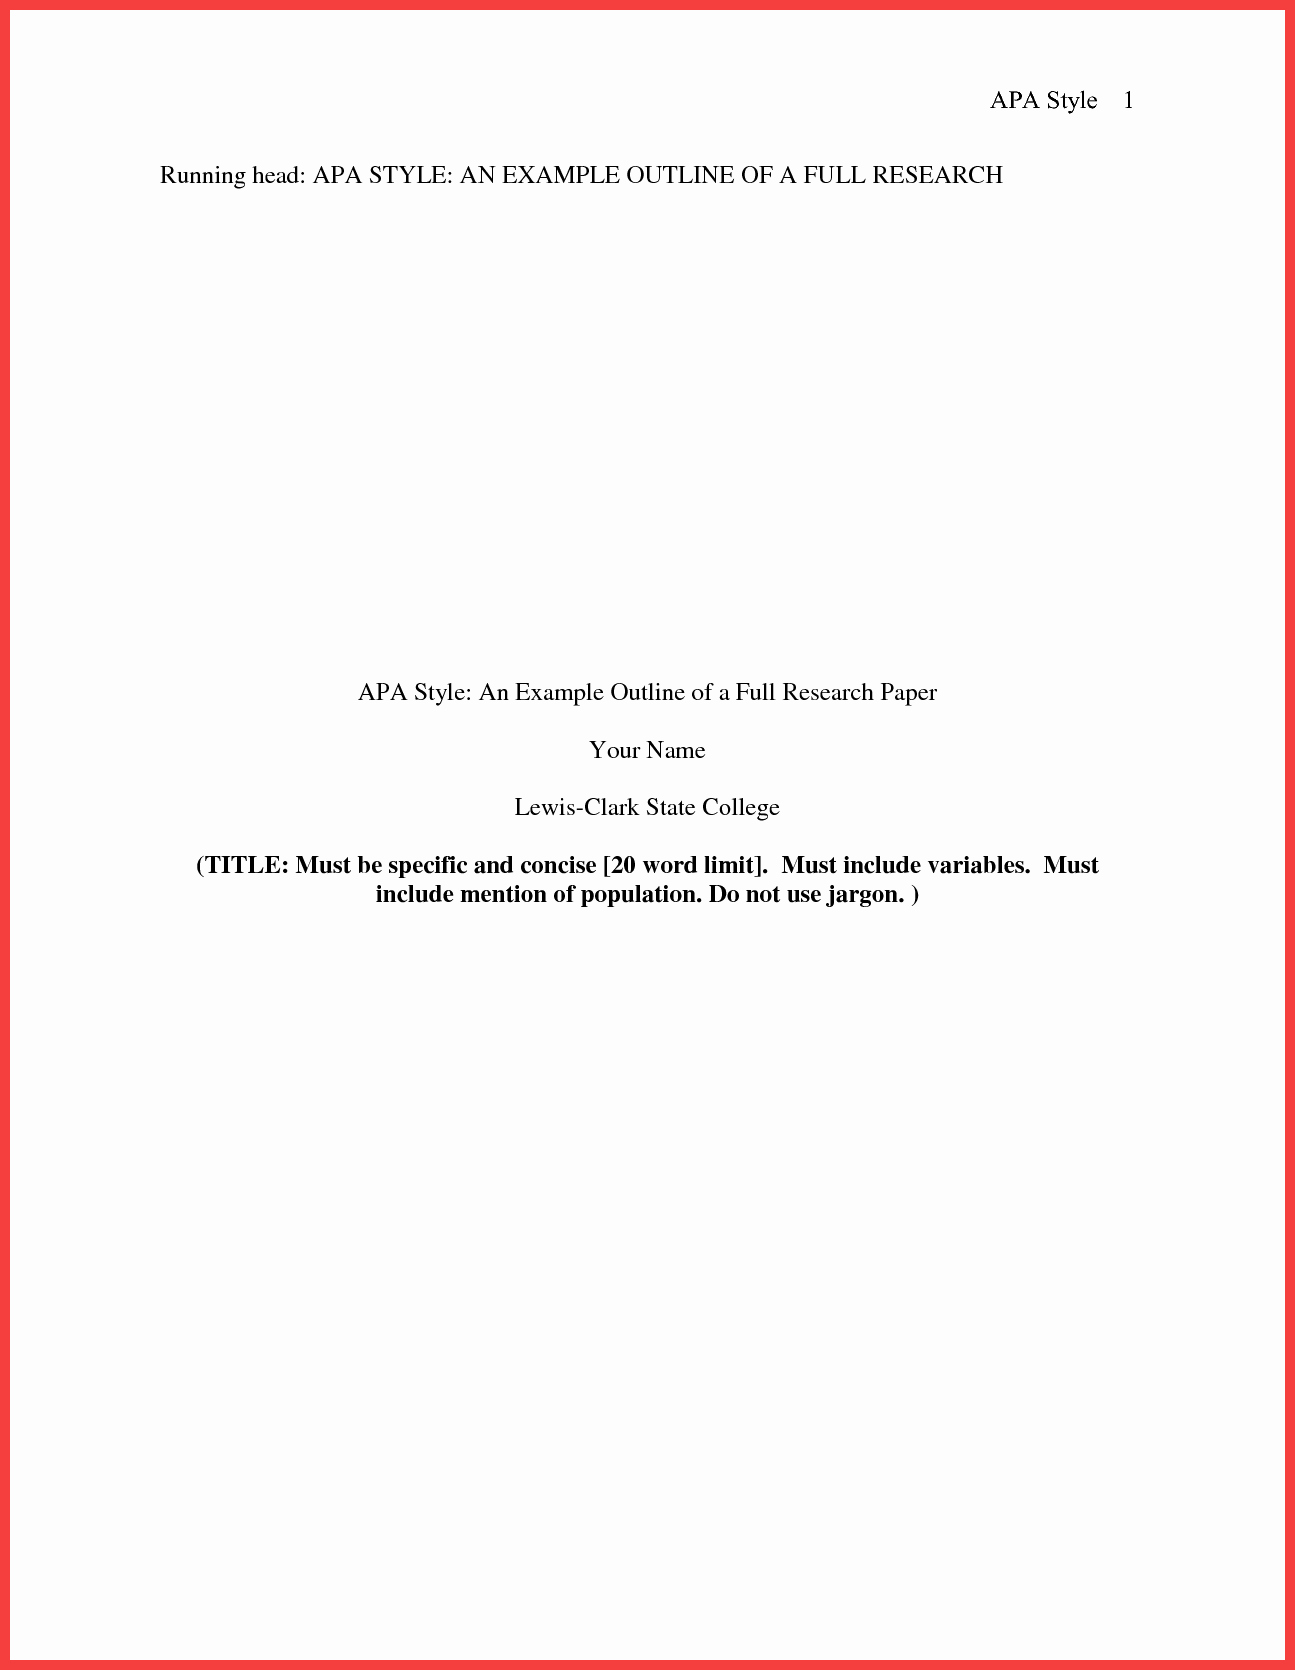 Sample Title Page Apa Style Awesome Quarterly Essay 10 Bad Pany the Cult Of the Research